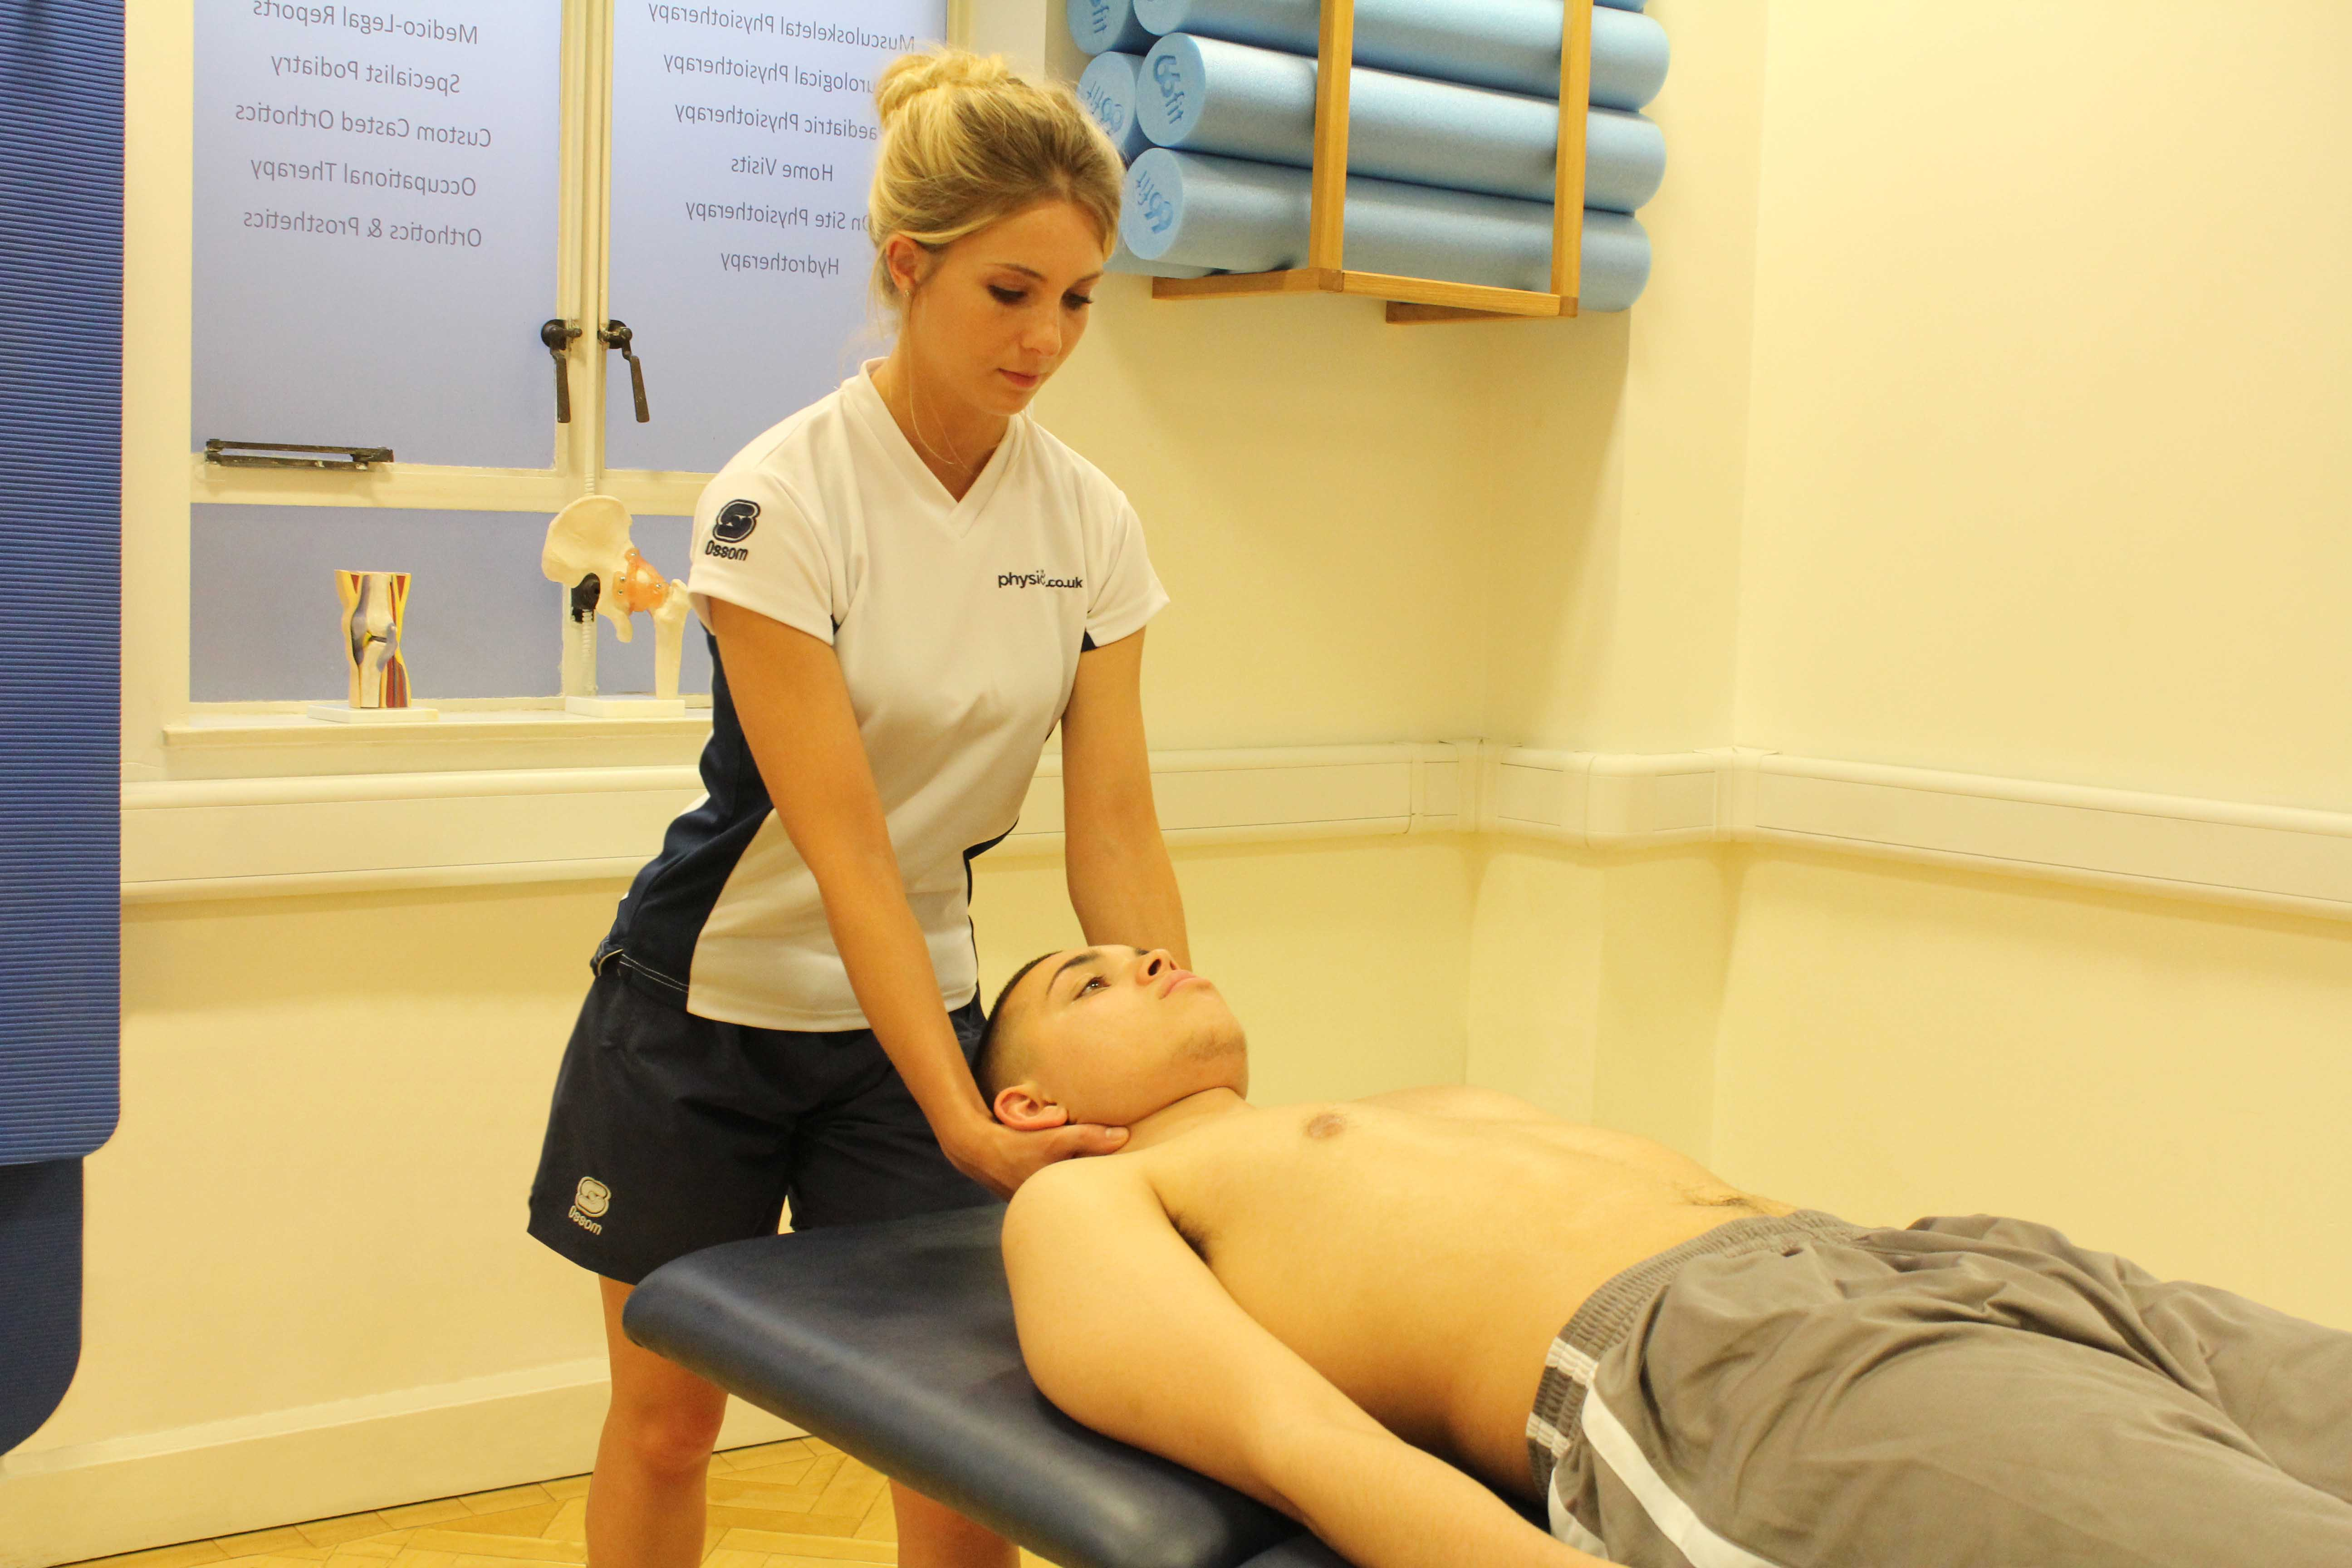 Mobilisation and stretches applied to the cervical spine by therapist